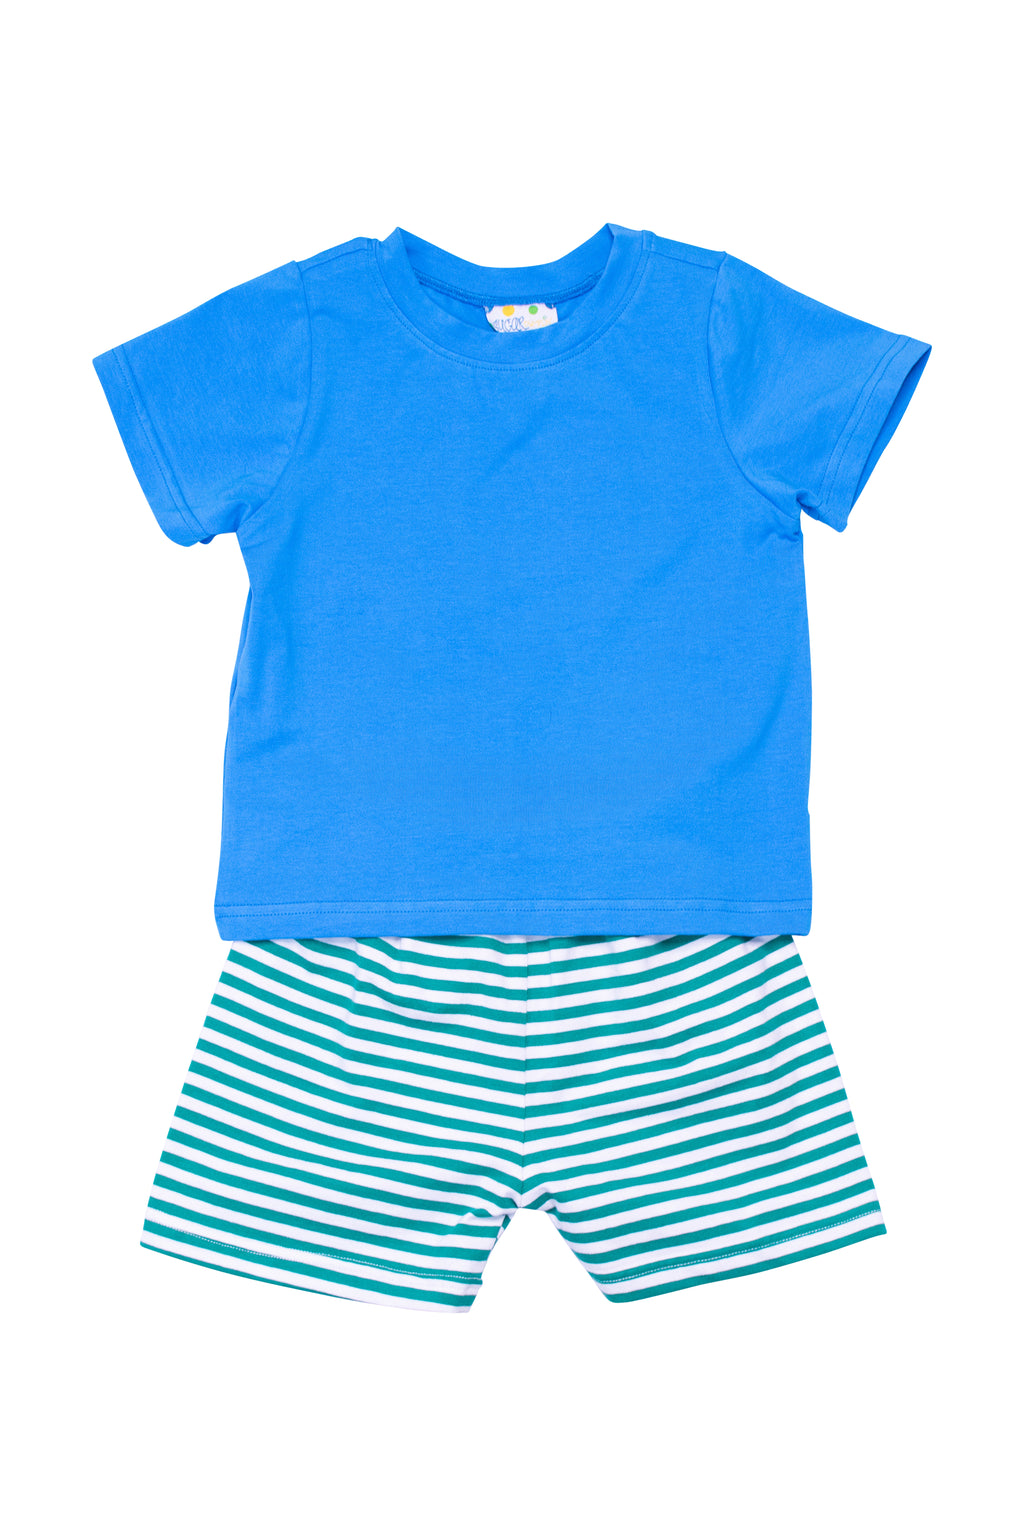 Boys Knit Aqua/Green Stripe Shorts Set